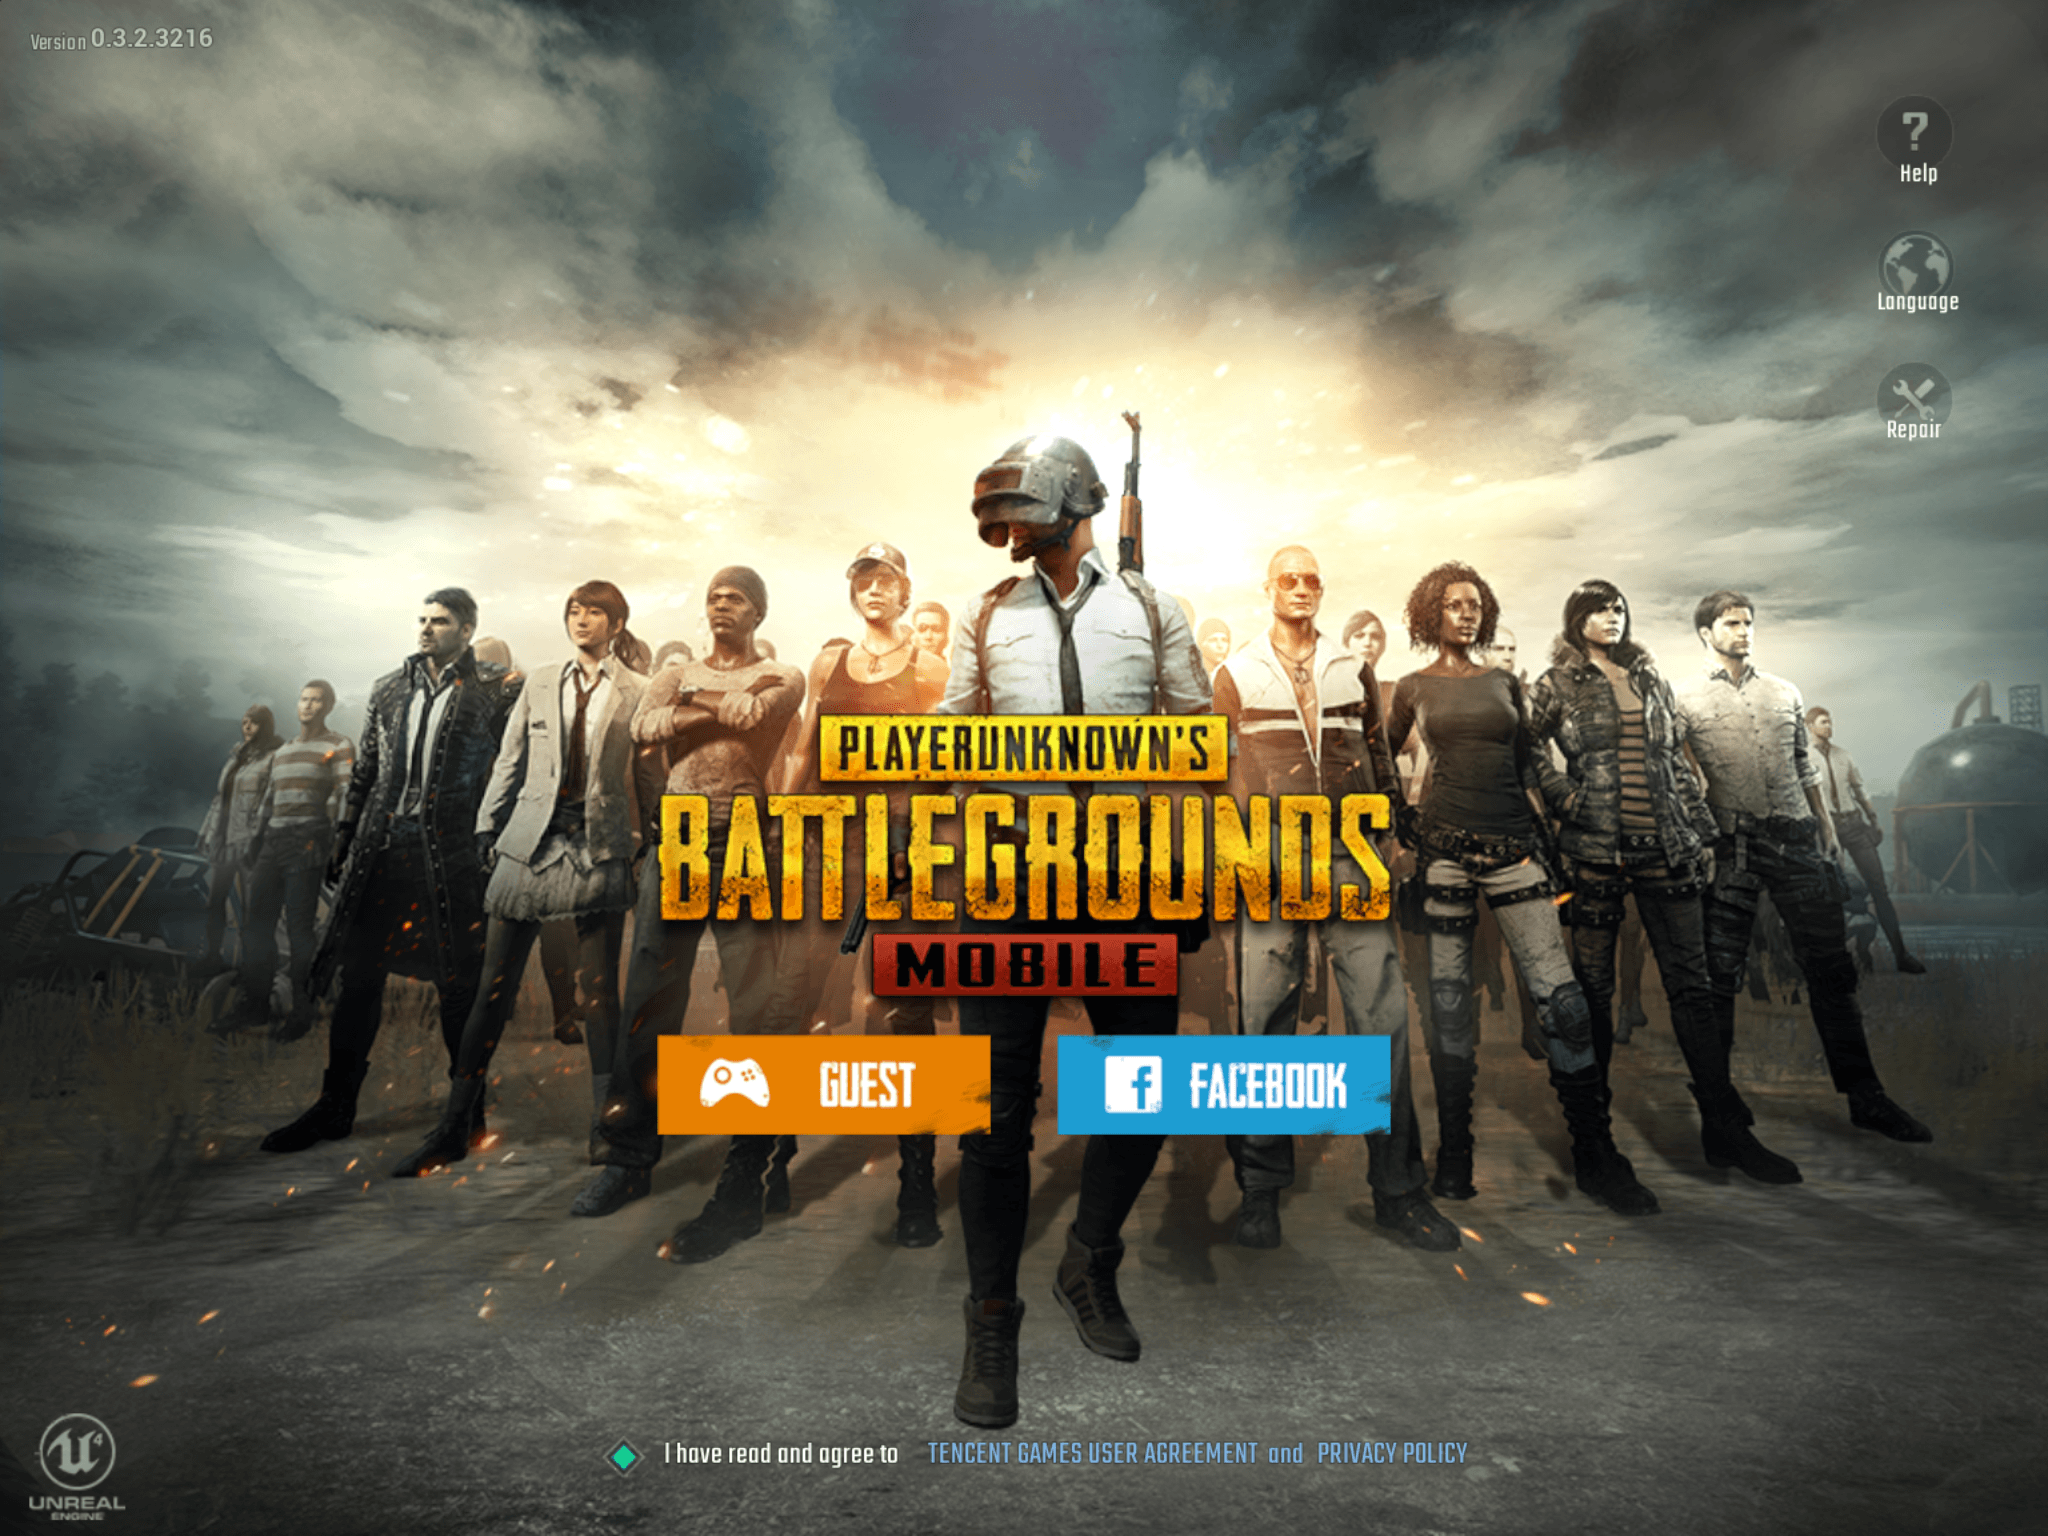 Pubg Hd Wallpaper 4k For Laptop: PUBG Mobile HD Wallpapers